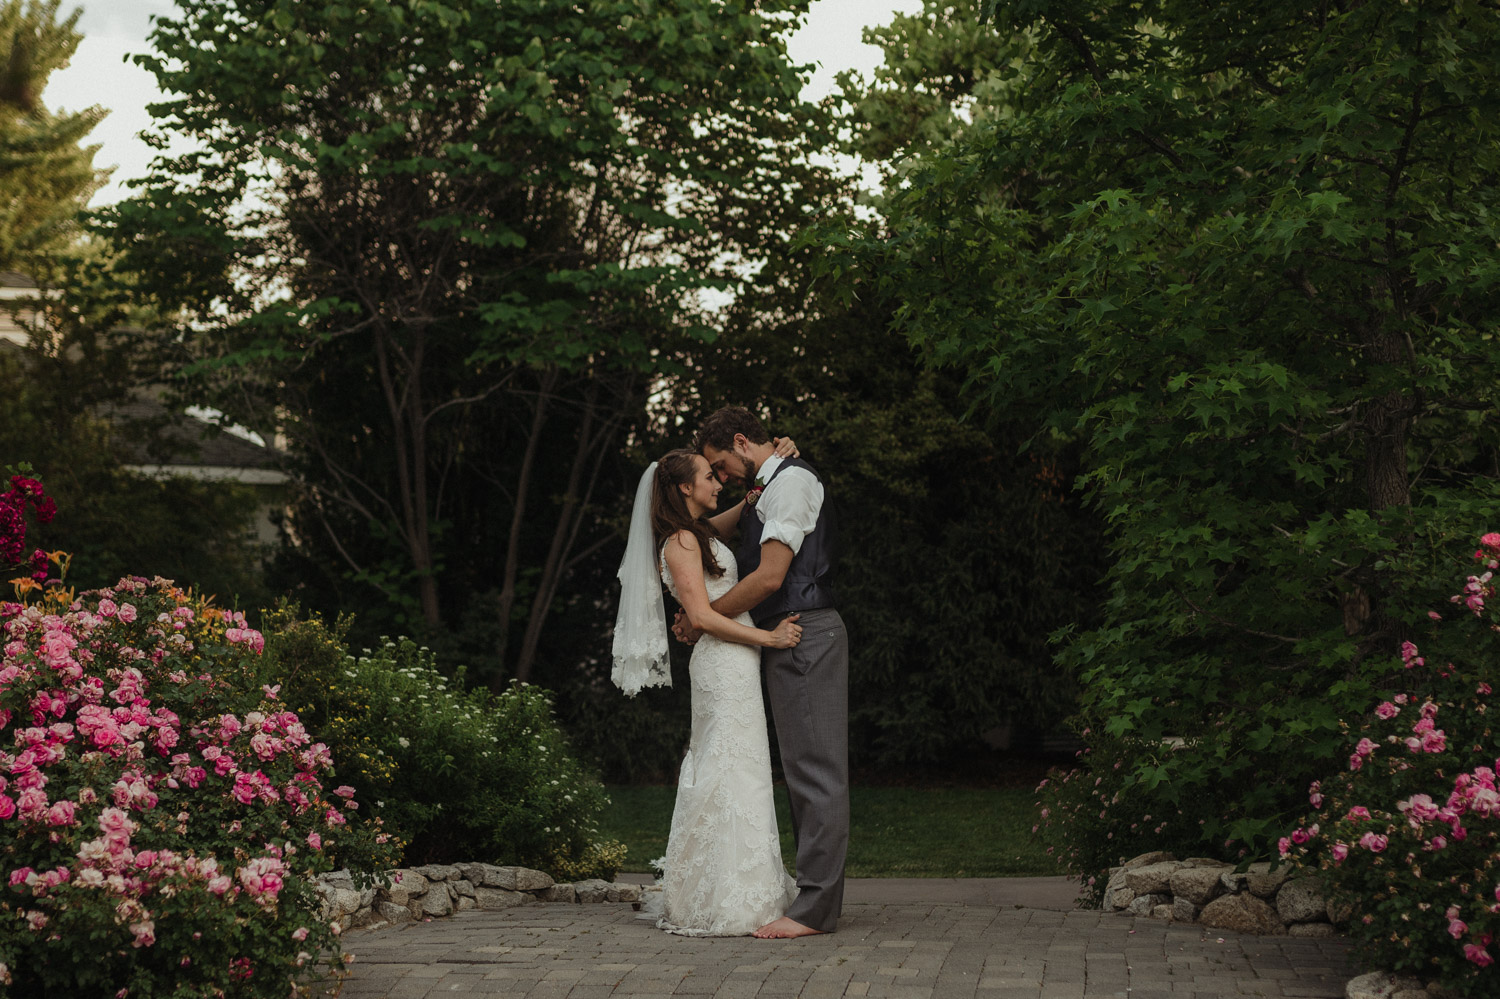 San Rafael, Reno wedding couple in a rose garden photo